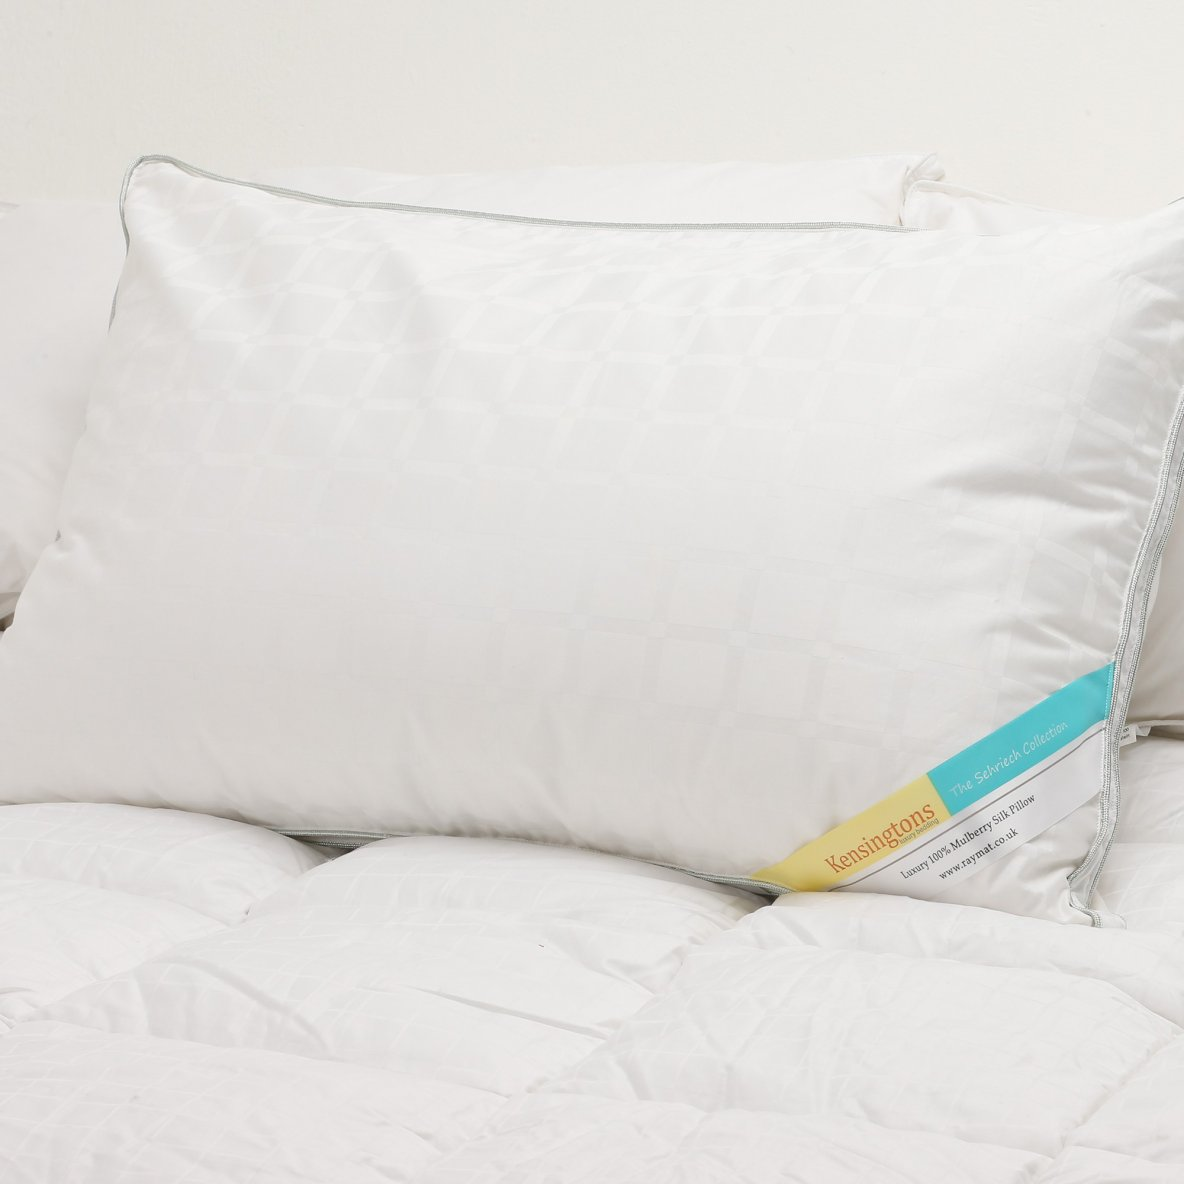 editorial sale for a in and pillows of photo image duvet store bedding duvets